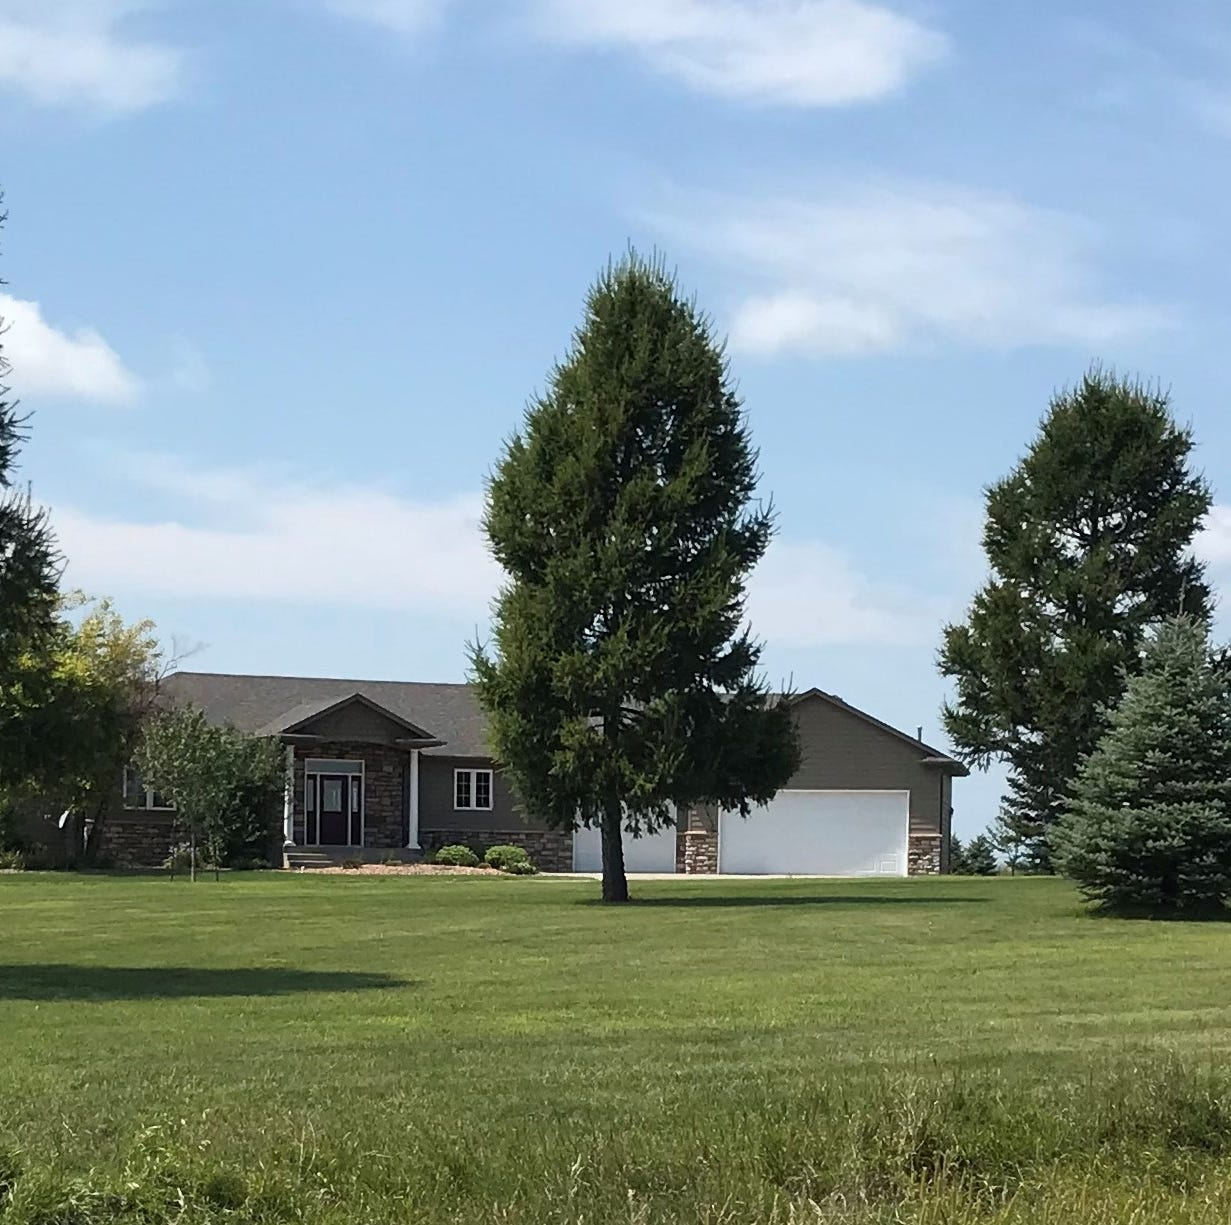 $759K home with shooting range in rural Minnehaha County tops home sales report